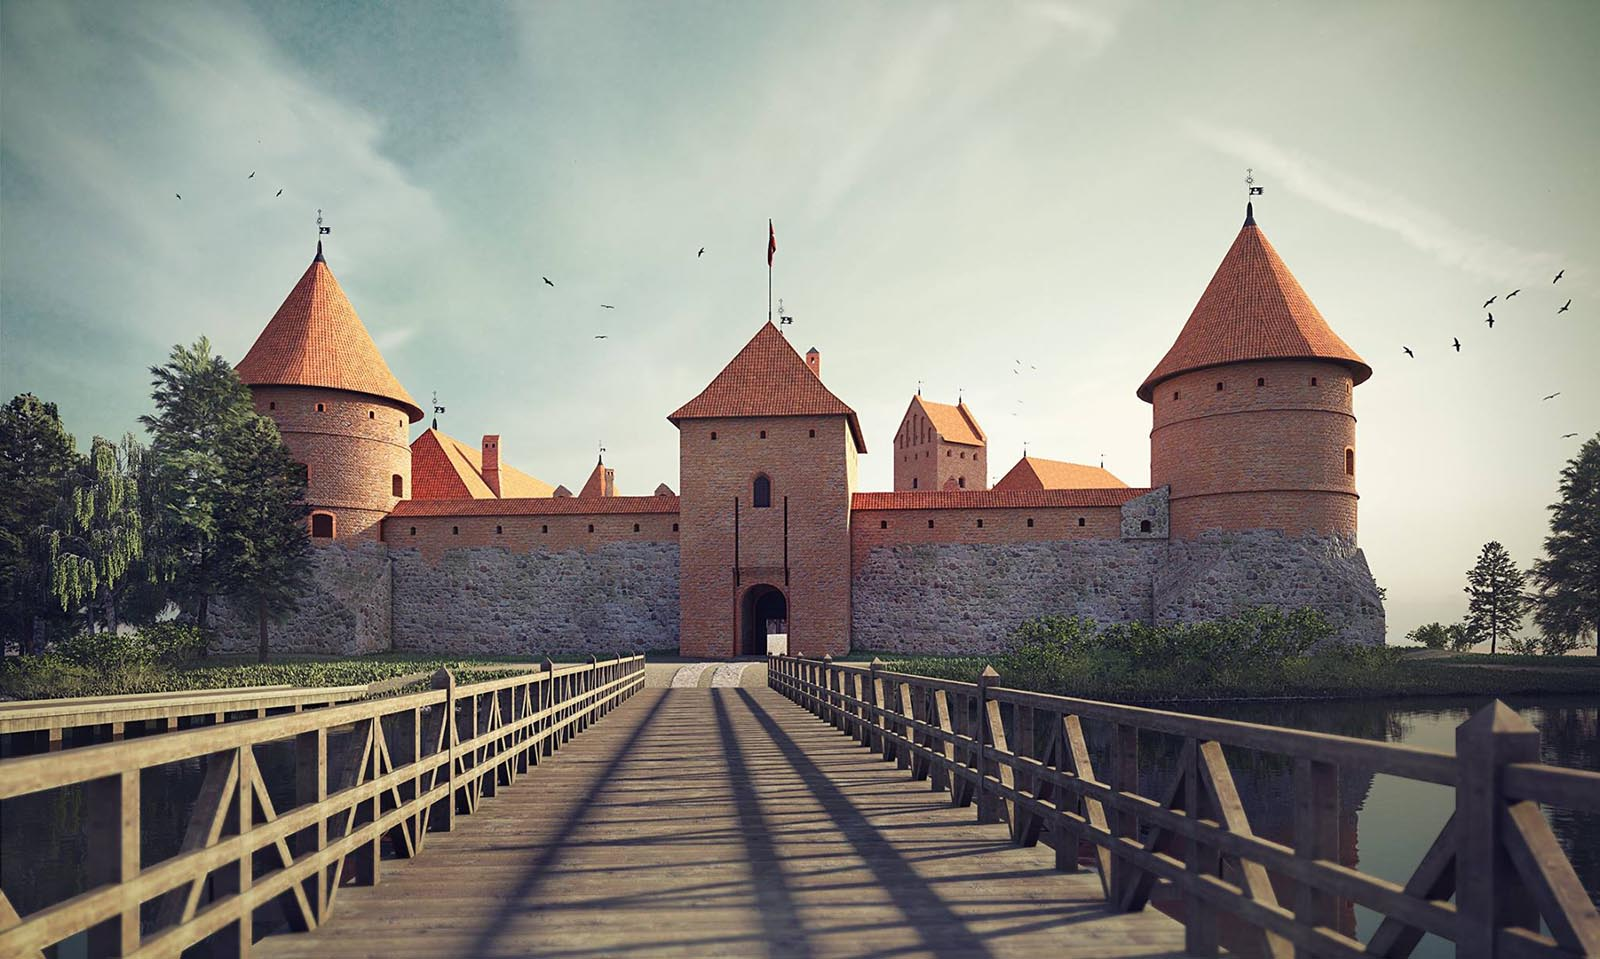 3D visualizations- render of a Trakai island castle-2